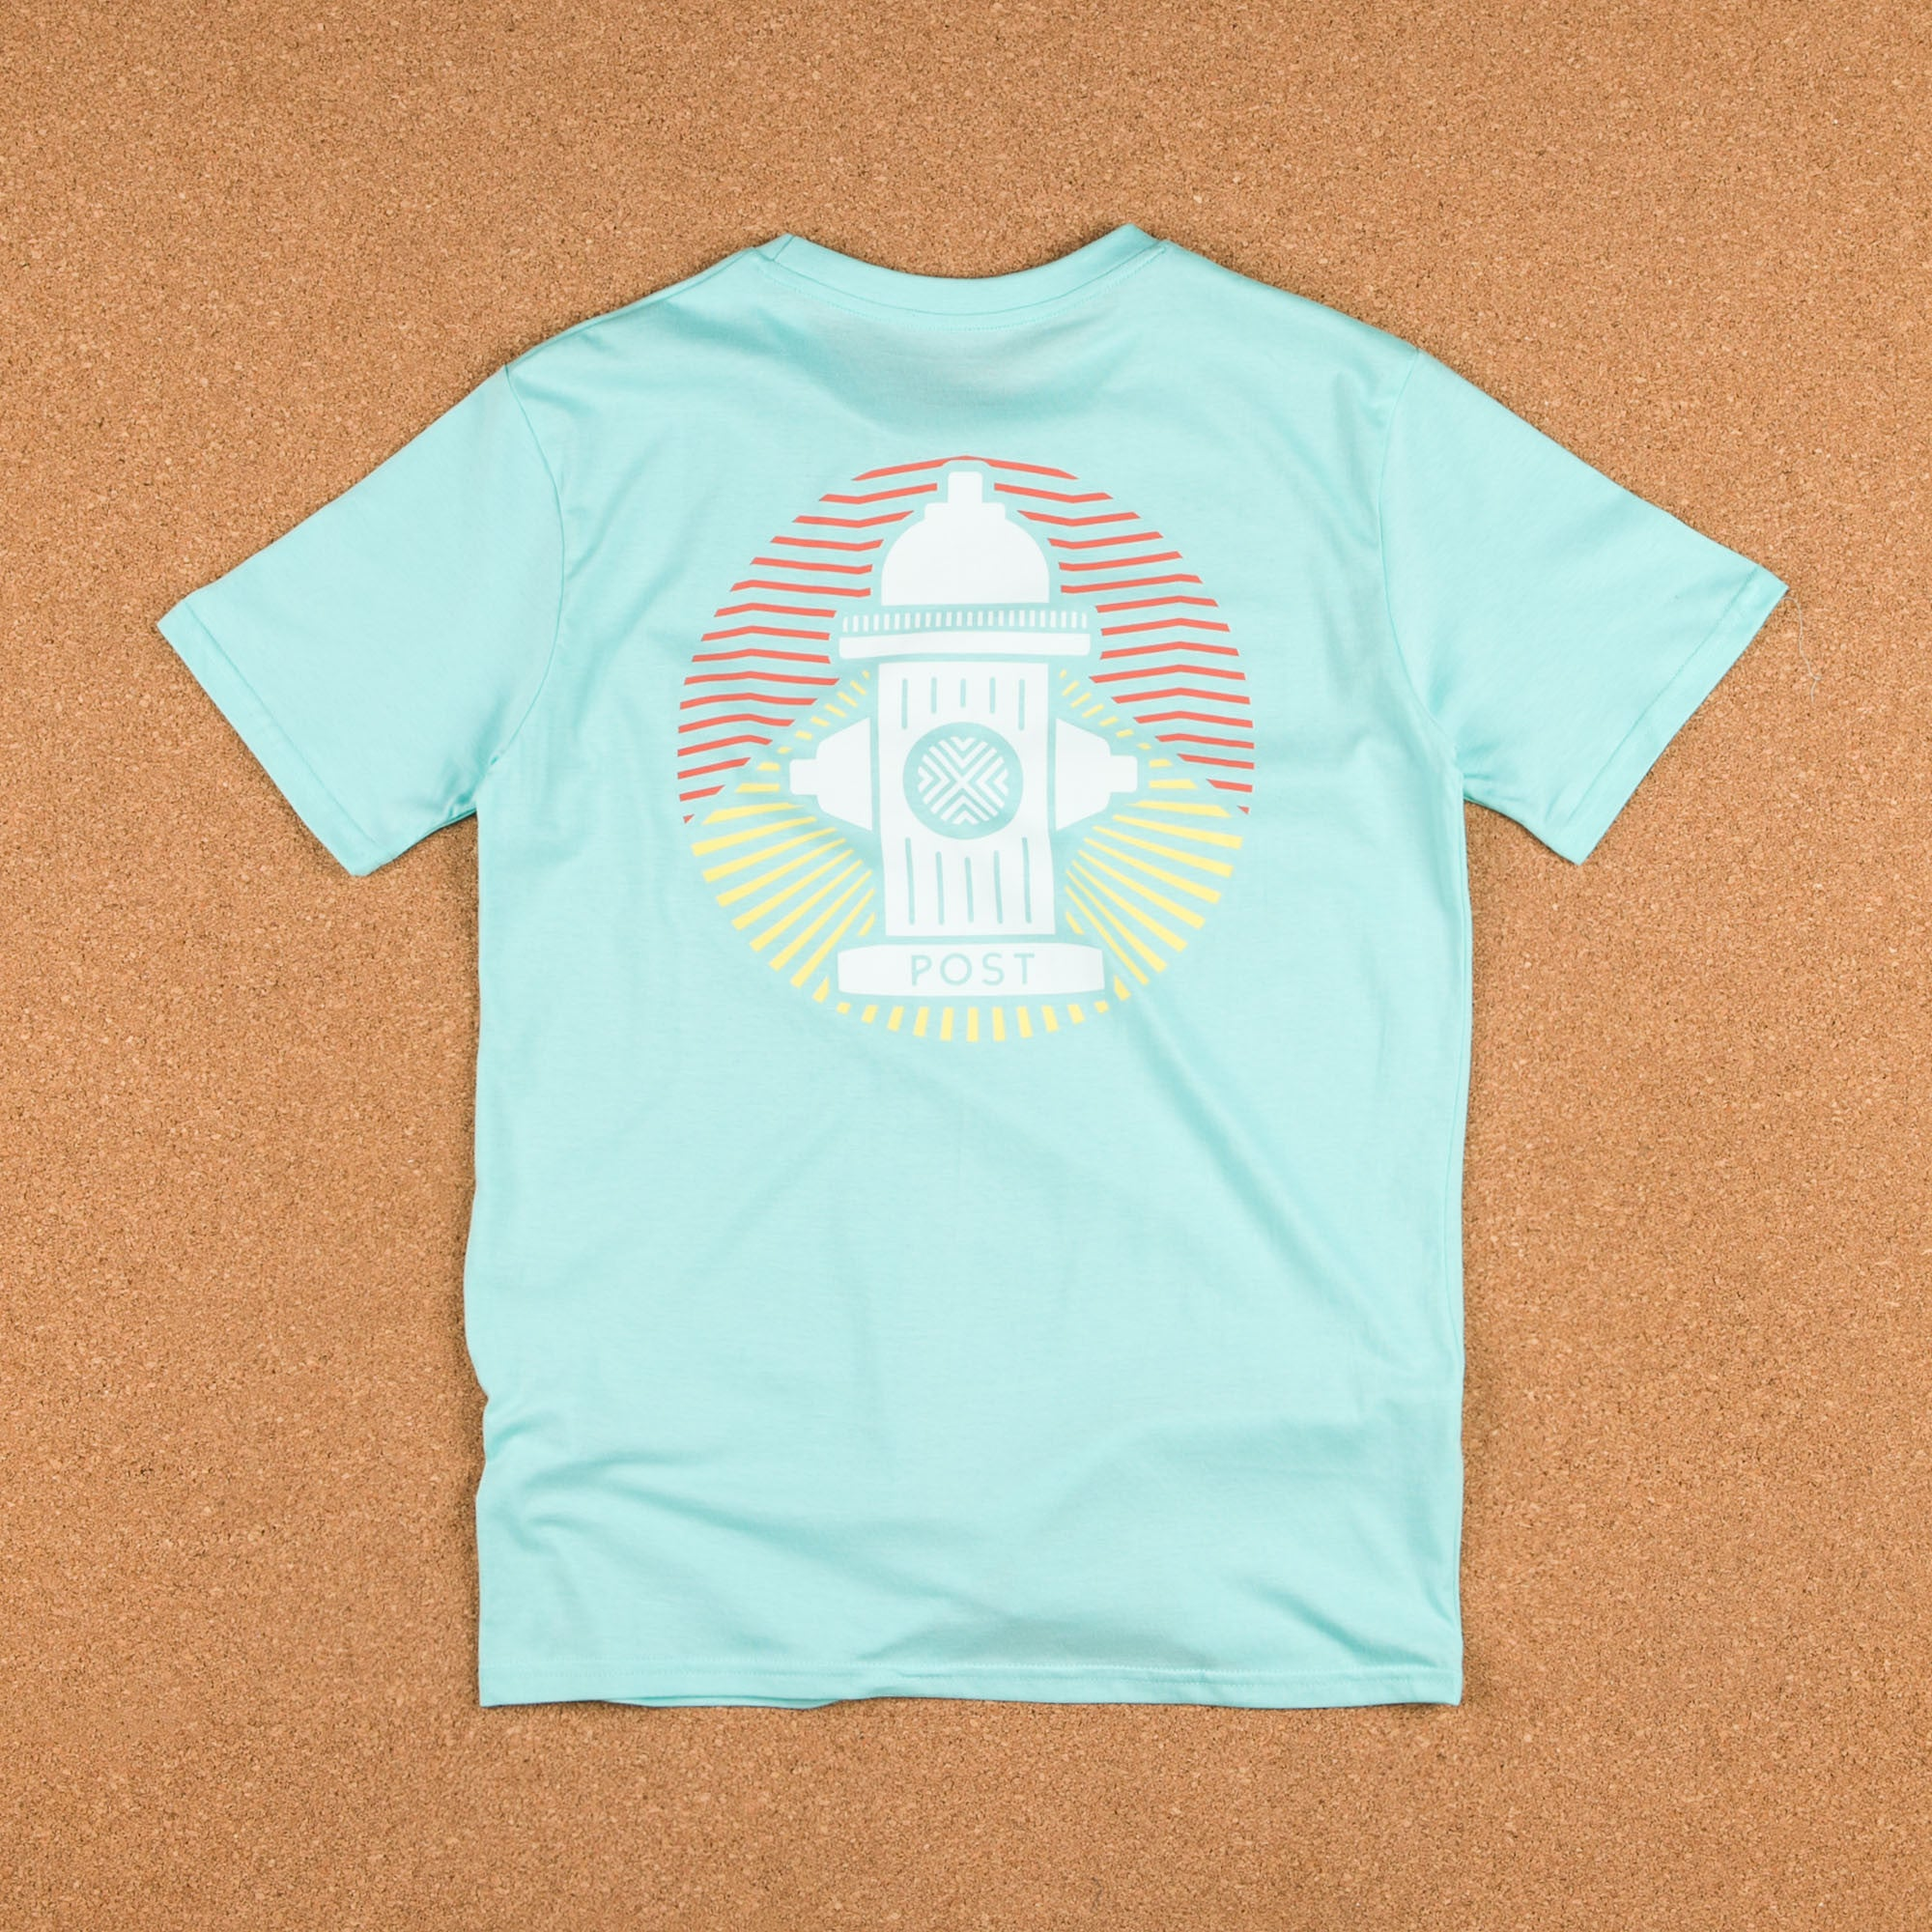 Post Details Tropical Hydrant T-Shirt - Faded Aqua